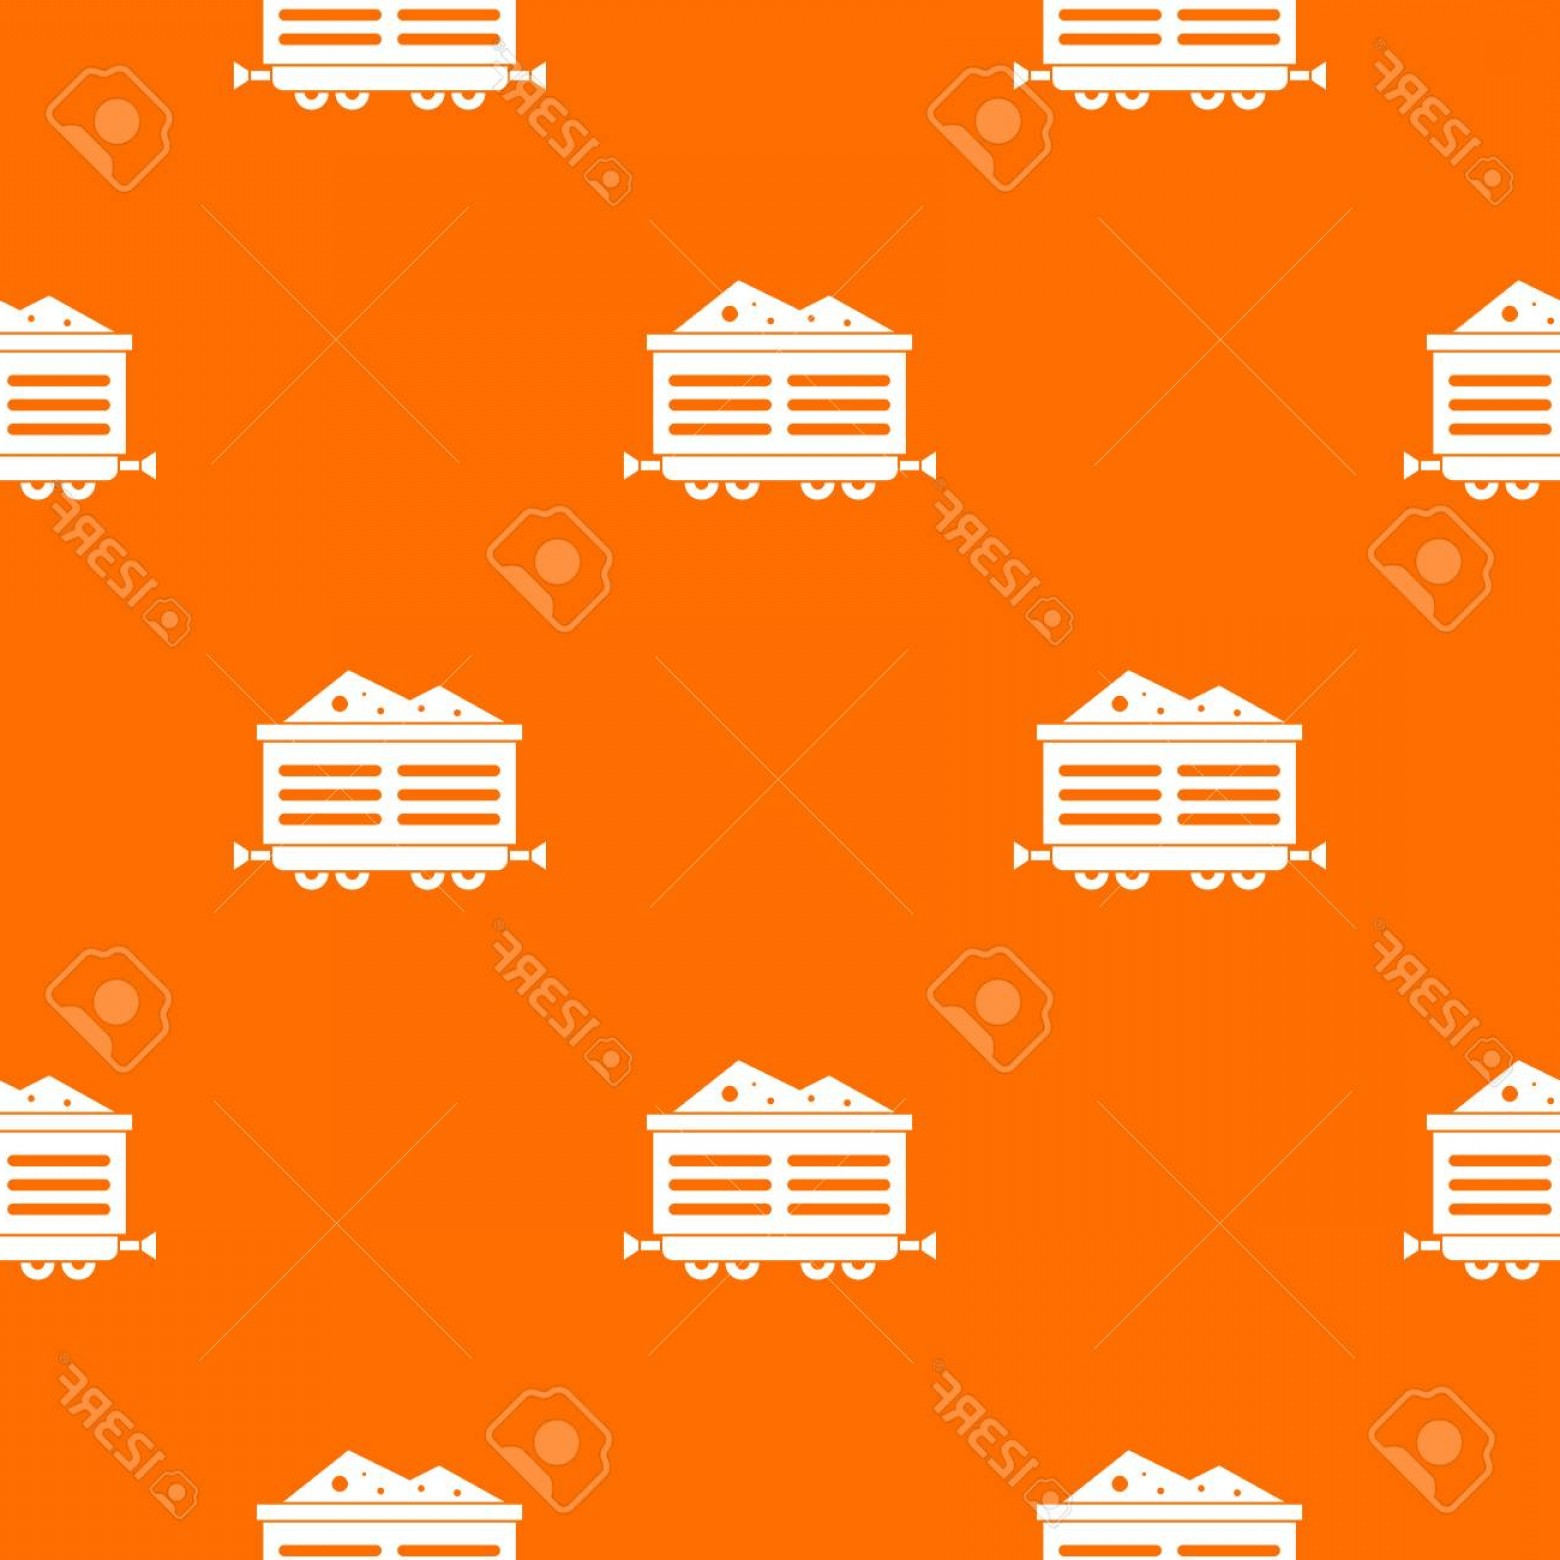 Vector Train Pattern: Photostock Vector Train Wagon With Coal Seamless Repeat Pattern In Orange Color For Any Design Vector Geometric Illust